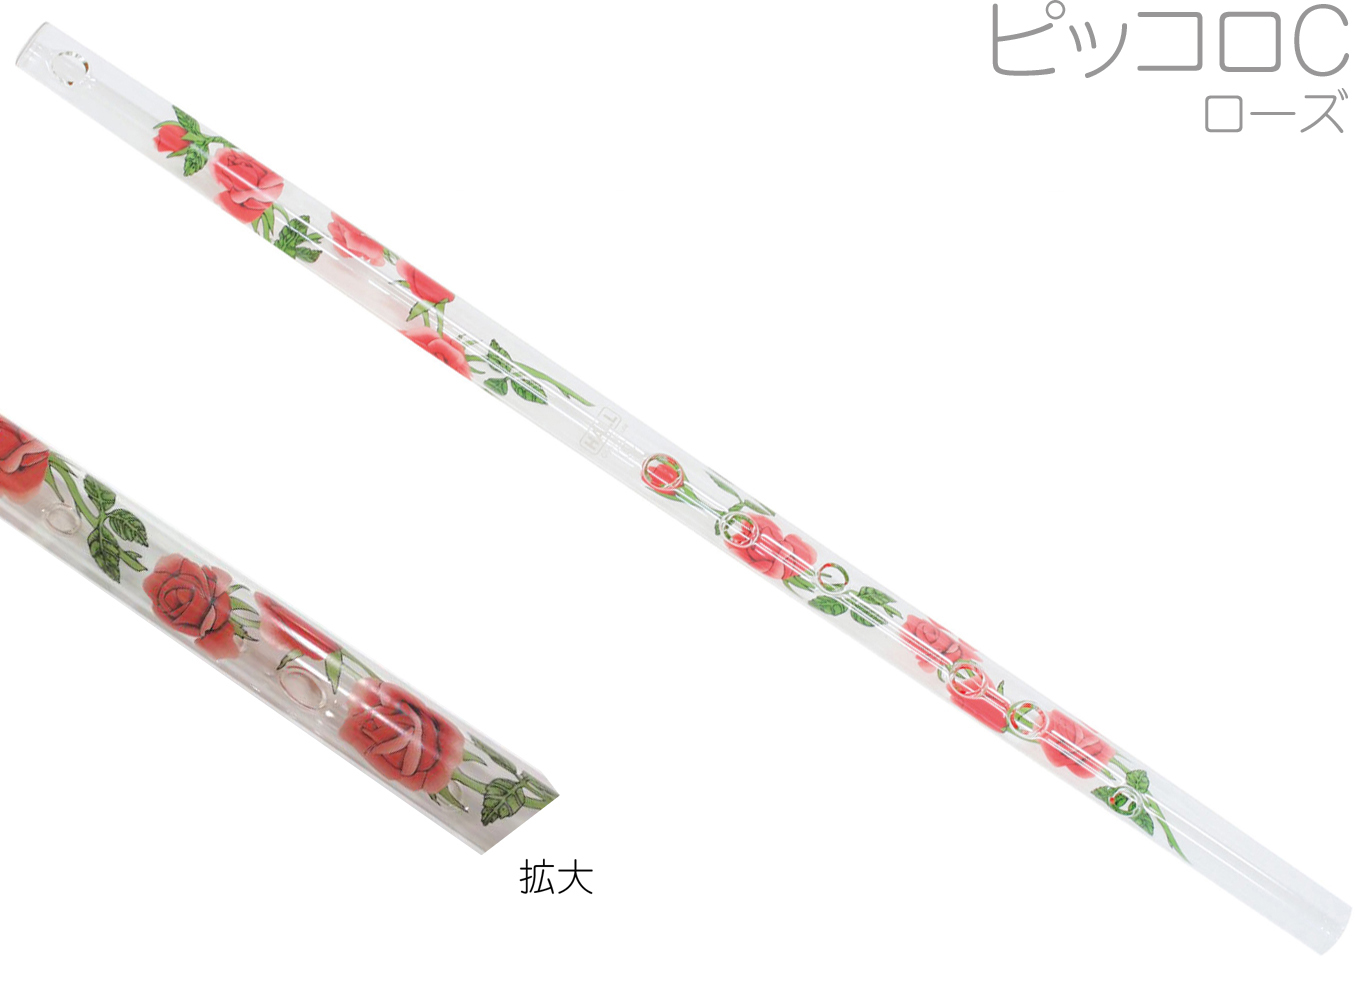 Piccolo flute flute flute C-like flute wind instrument made of HALL (hall)  crystal piccolo C pipe Rose CRYSTAL PICCOLO C ROSE rose pattern clear glass